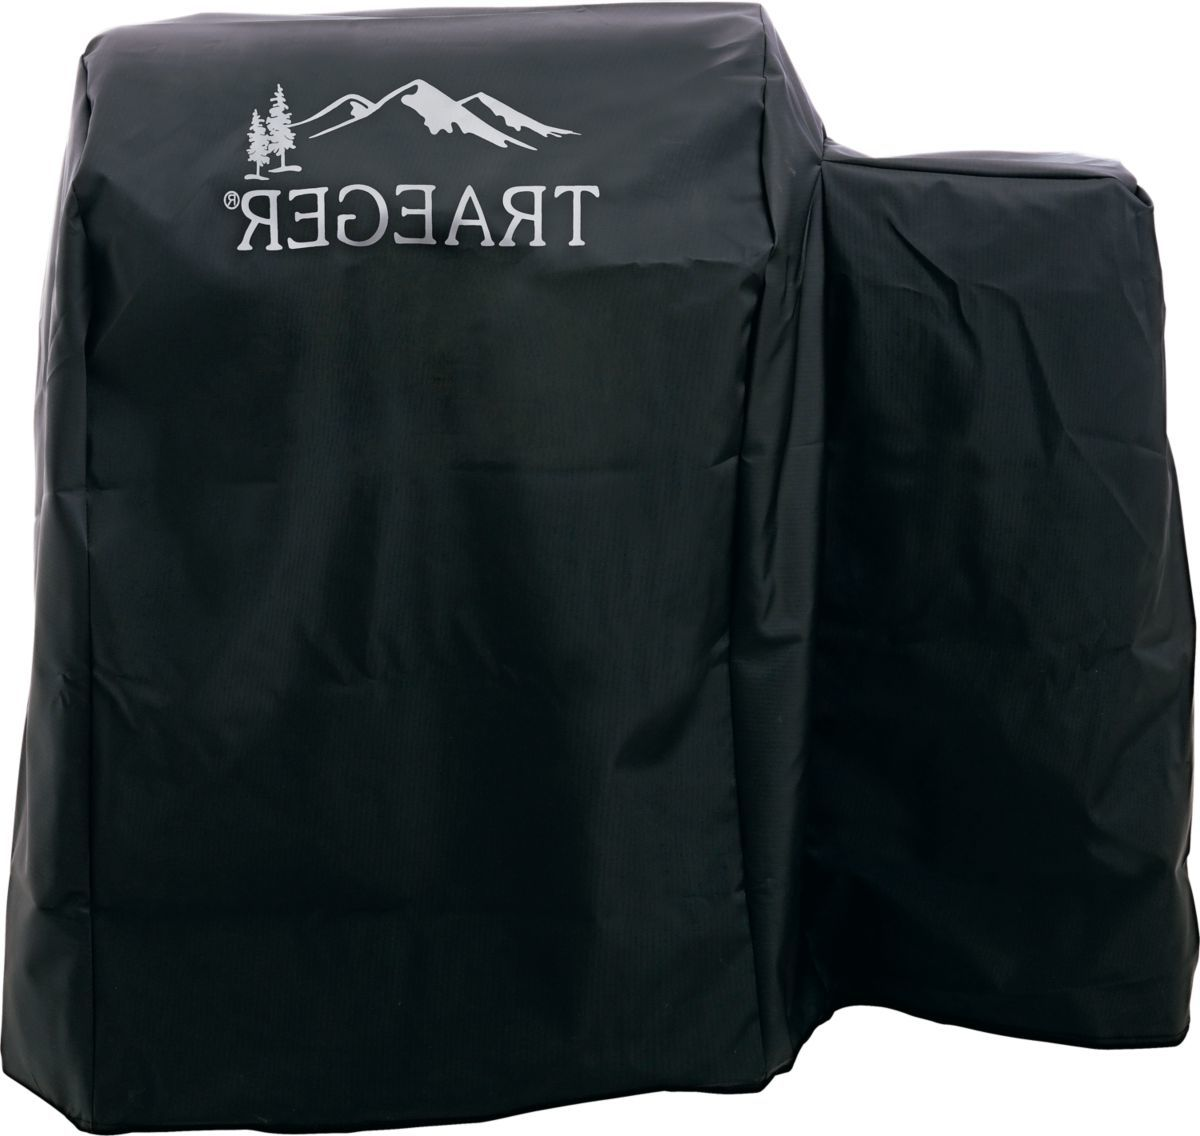 Traeger® Full-Length 20 Series Grill Cover